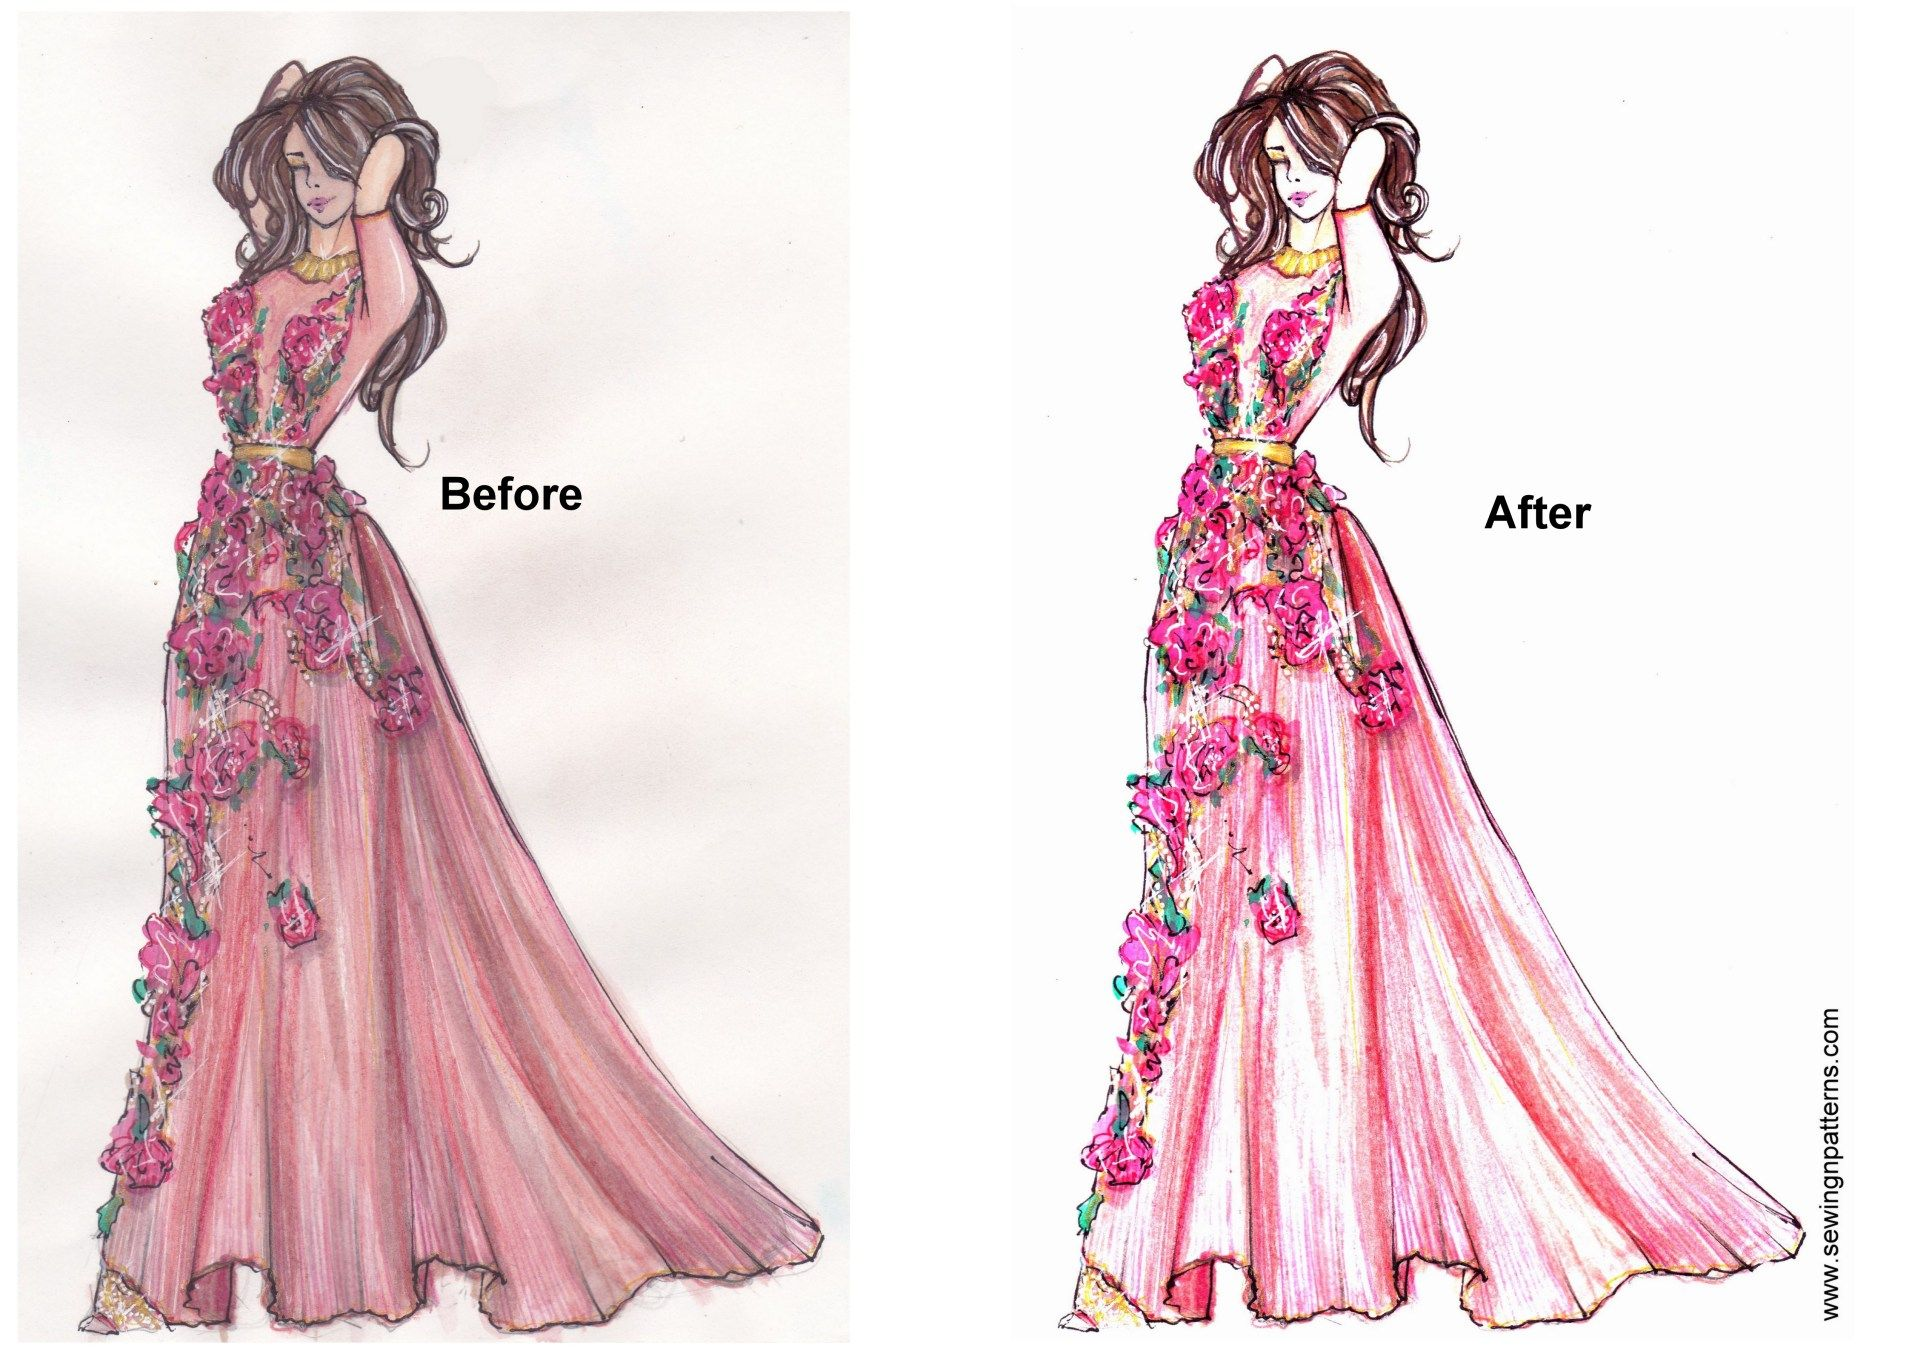 How To Present Fashion Sketches To Reach More People And